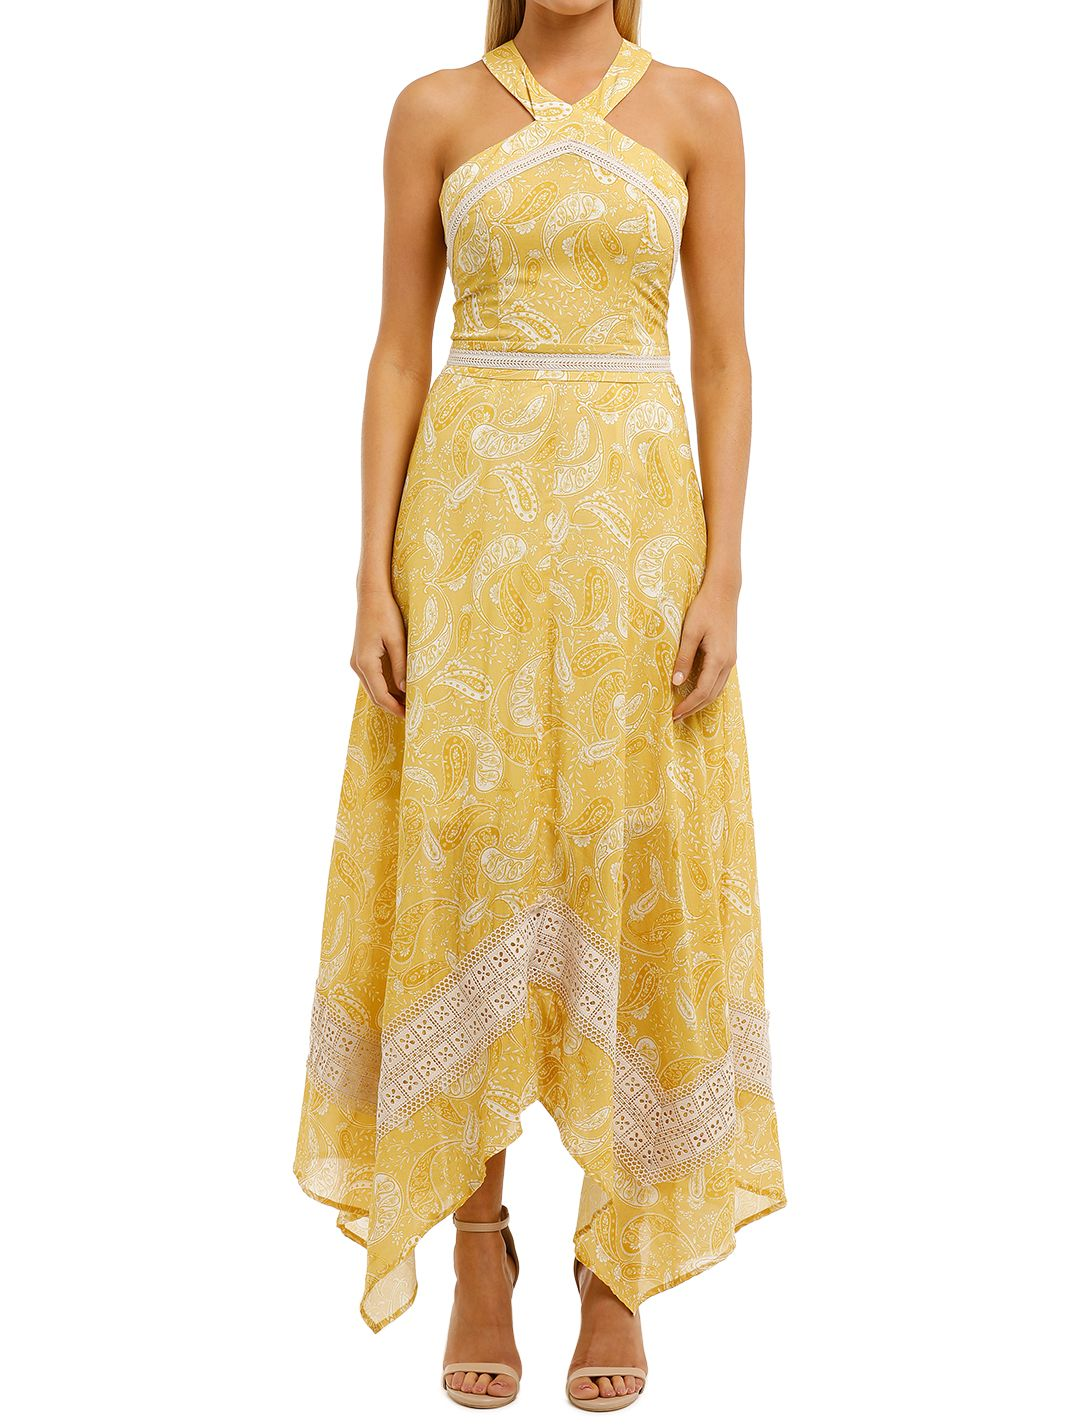 We-Are-Kindred-Sorrento-Midi-Dress-Sunflower-Paisley-Front